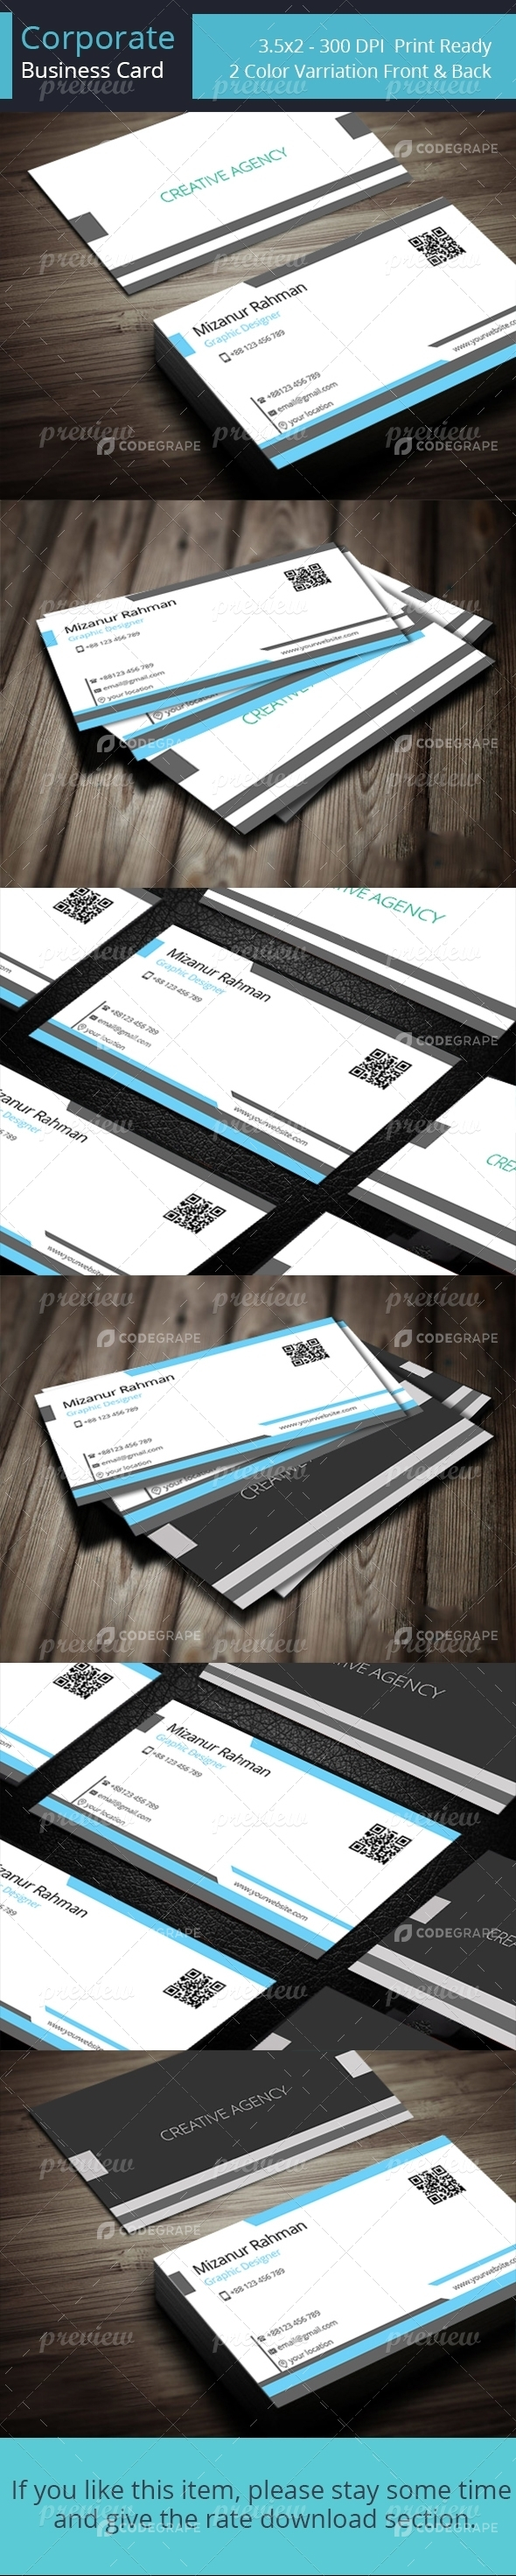 Corporate Business Card Vol 04